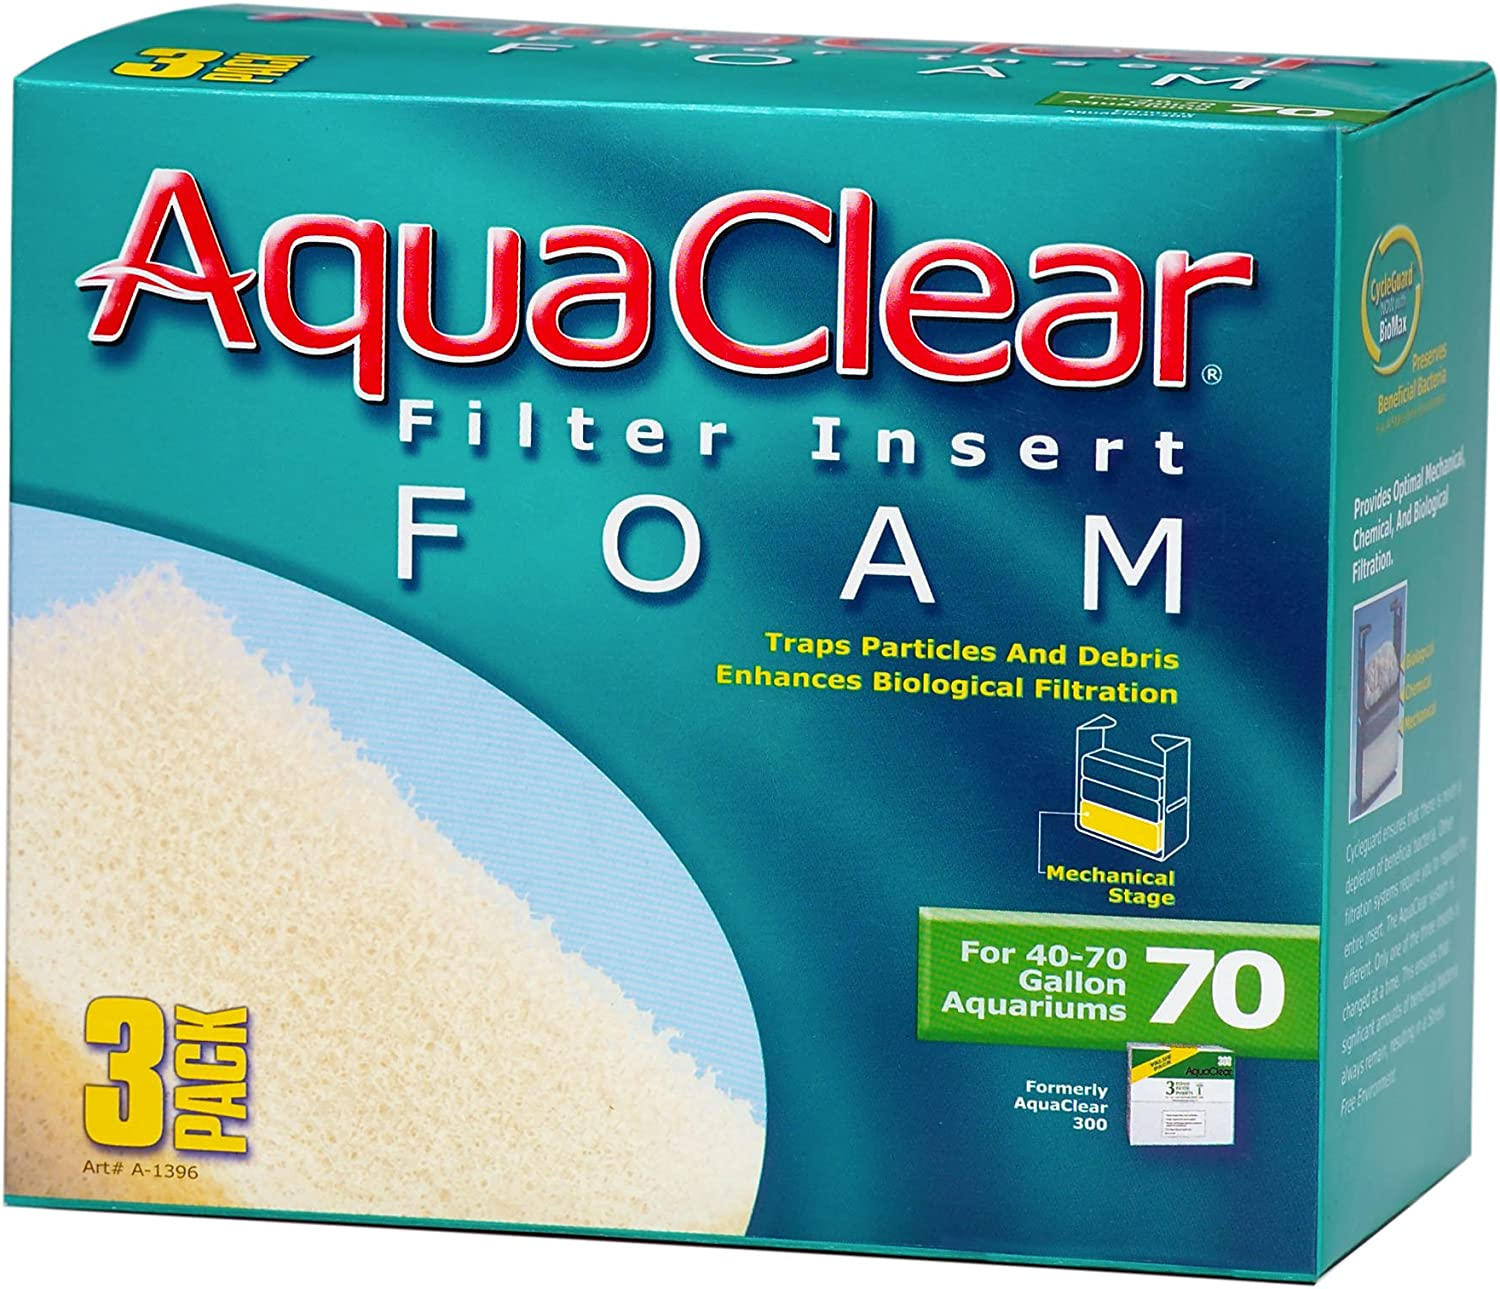 AquaClear 70 Foam Filter Inserts, Aquarium Filter Replacement Media, 3-Pack, A1396